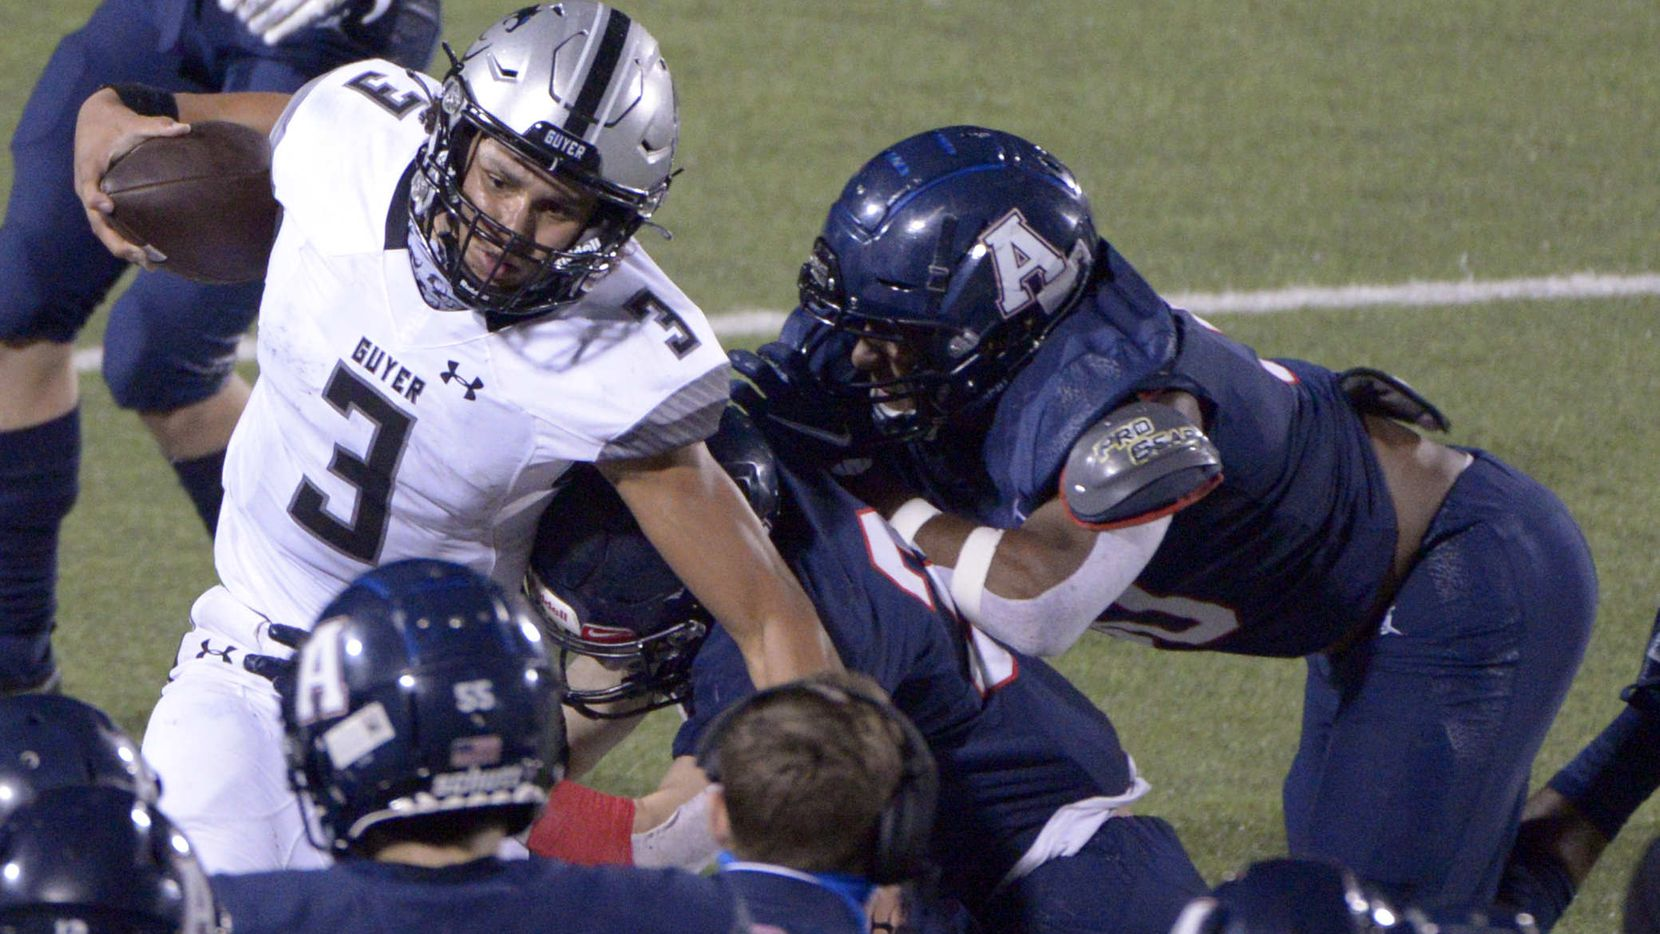 Deton Guyer quarterback Eli Stowers is tackled along the sidelines in the fourth quarter of a high school football game between Denton Guyer and Allen, Friday, Nov. 13, 2020, in Allen, Texas. (Matt Strasen/Special Contributor)